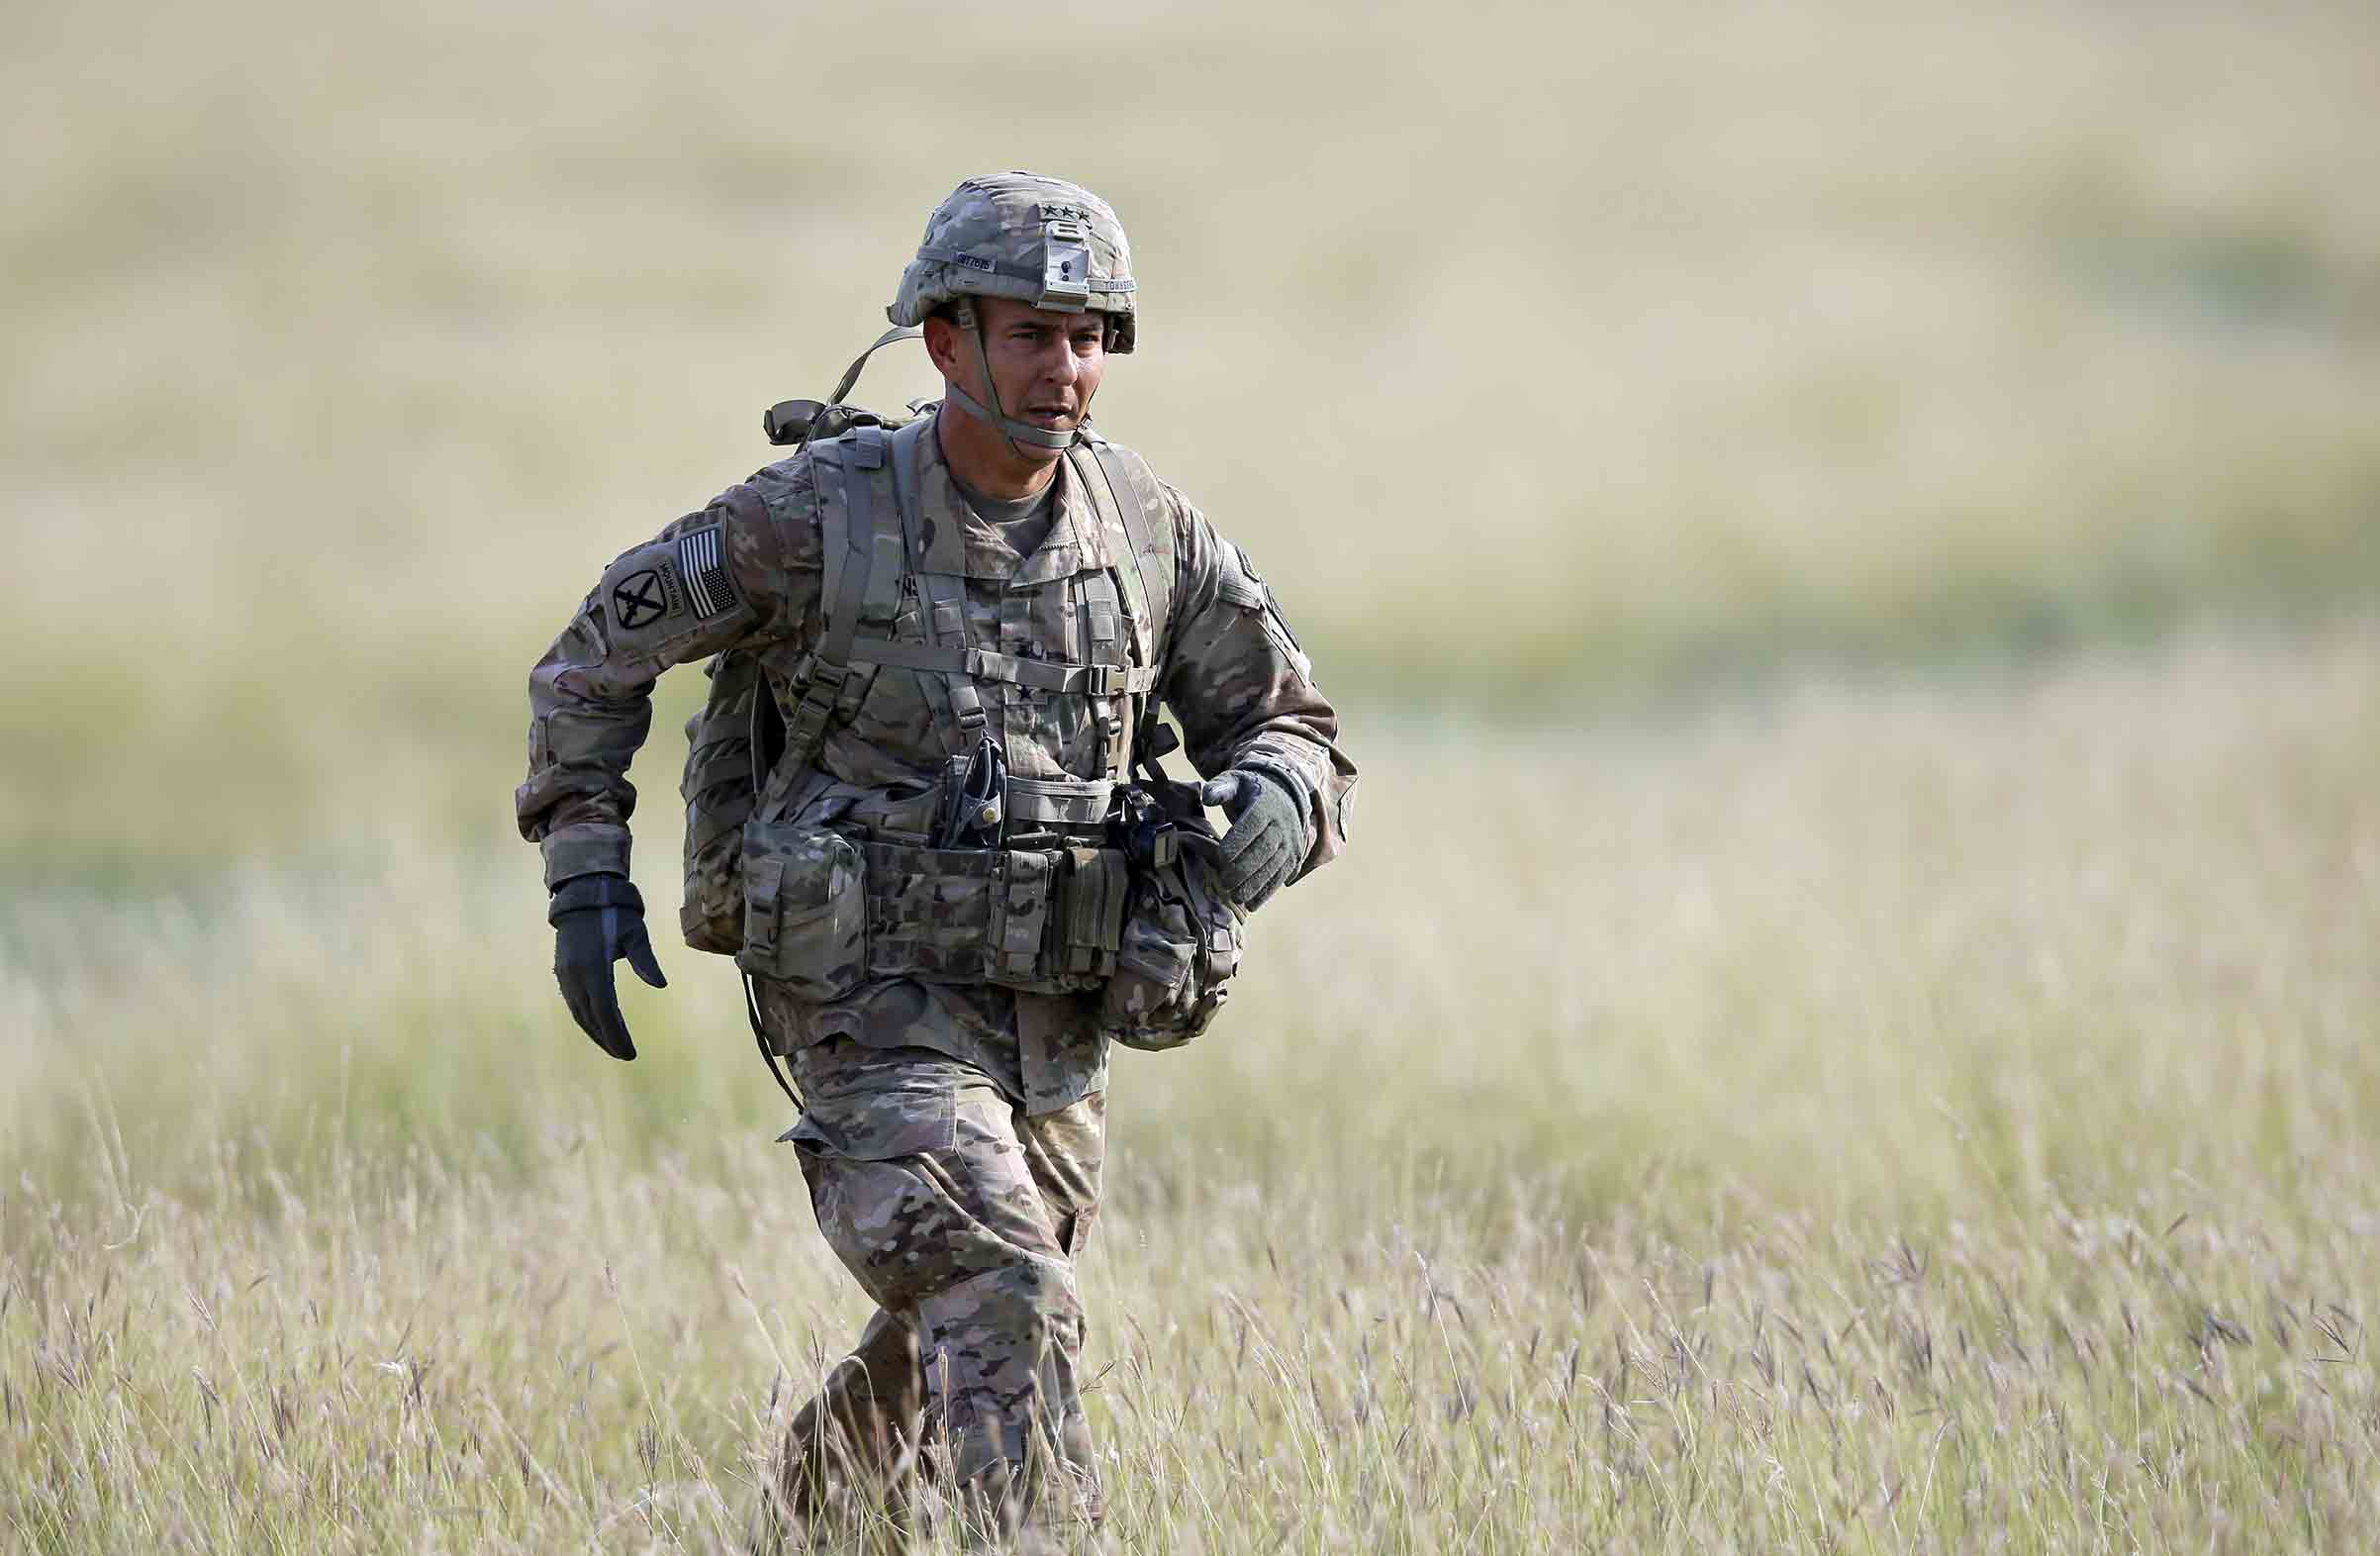 Maj. Gen. Stephen J. Townsend, the commander of the 18th Airborne Corps, runs towards the media working area during an US Army-led airborne assault exercise named 'Swift Response 15', held at Smardan shooting range, 260 kilometers north-east of Bucharest, Romania, Aug. 26 2015.